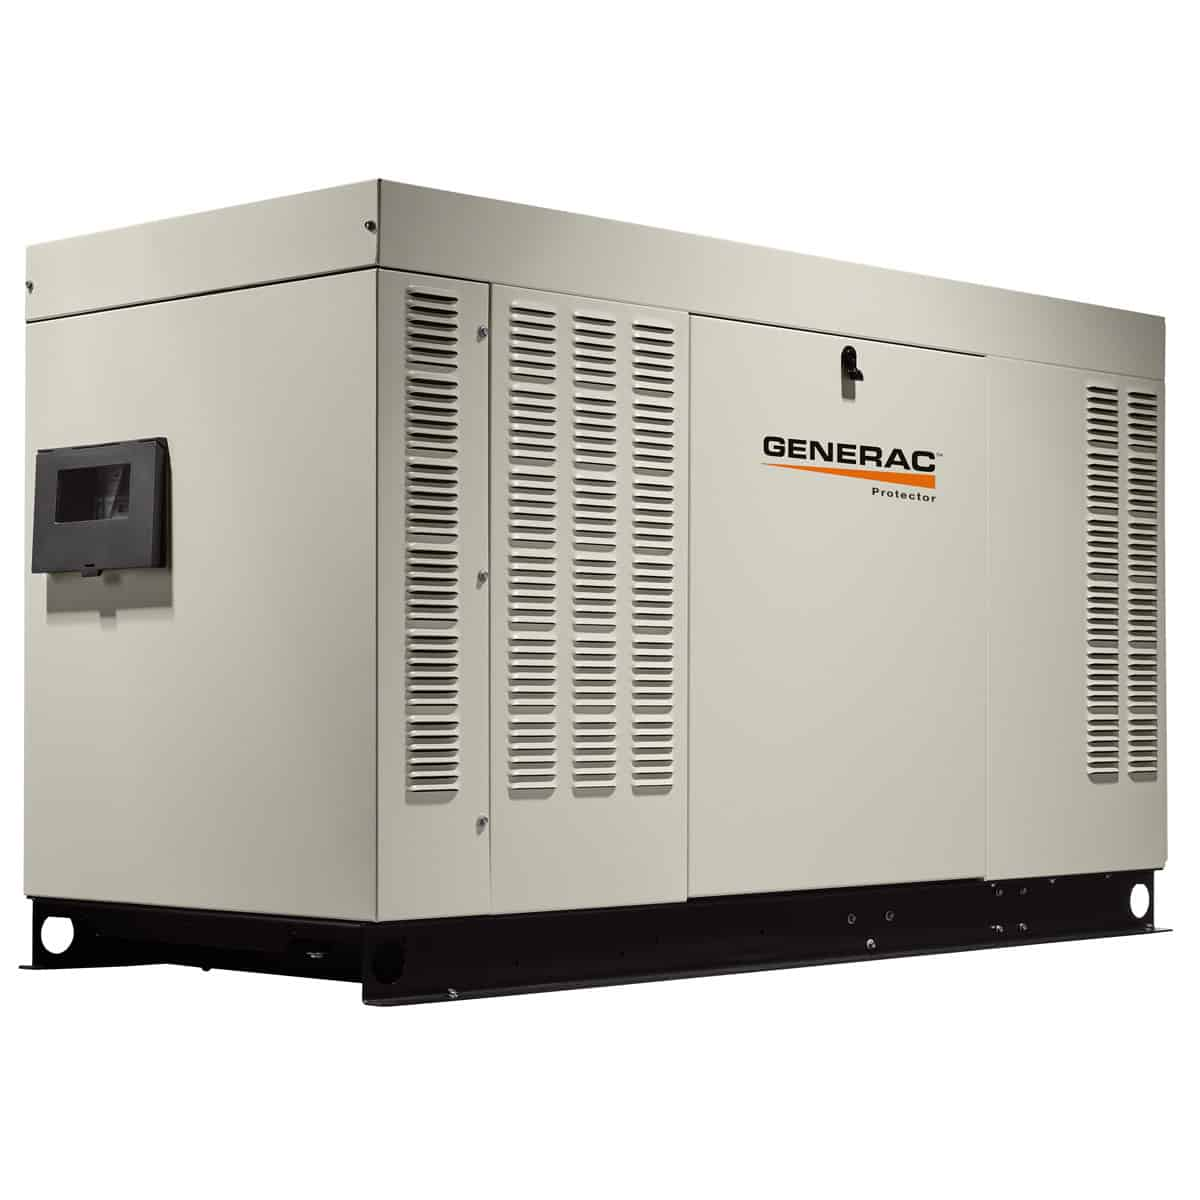 hight resolution of generac 25kw generator protector series ng lp norwall powersystems norwall powersystems